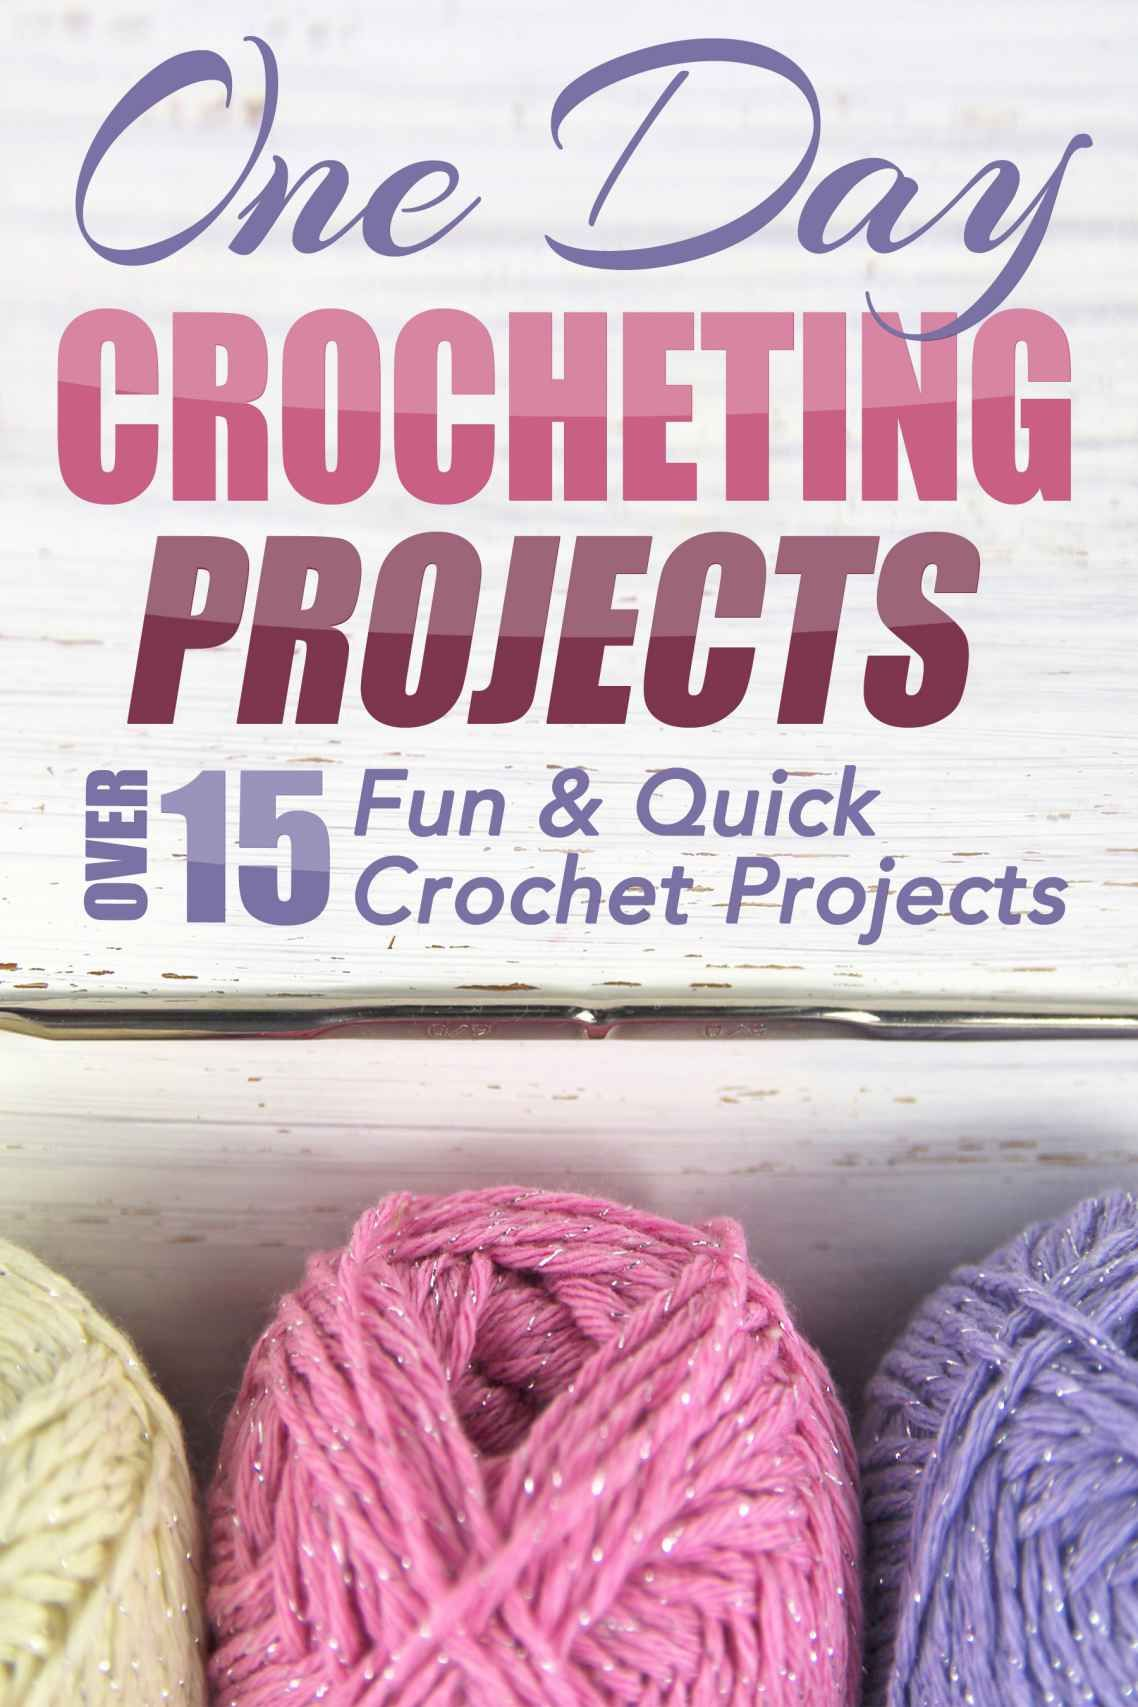 One day crocheting projects over 15 fun quick crochet projects one day crocheting projects over 15 fun quick crochet projects crochet patterns bankloansurffo Images